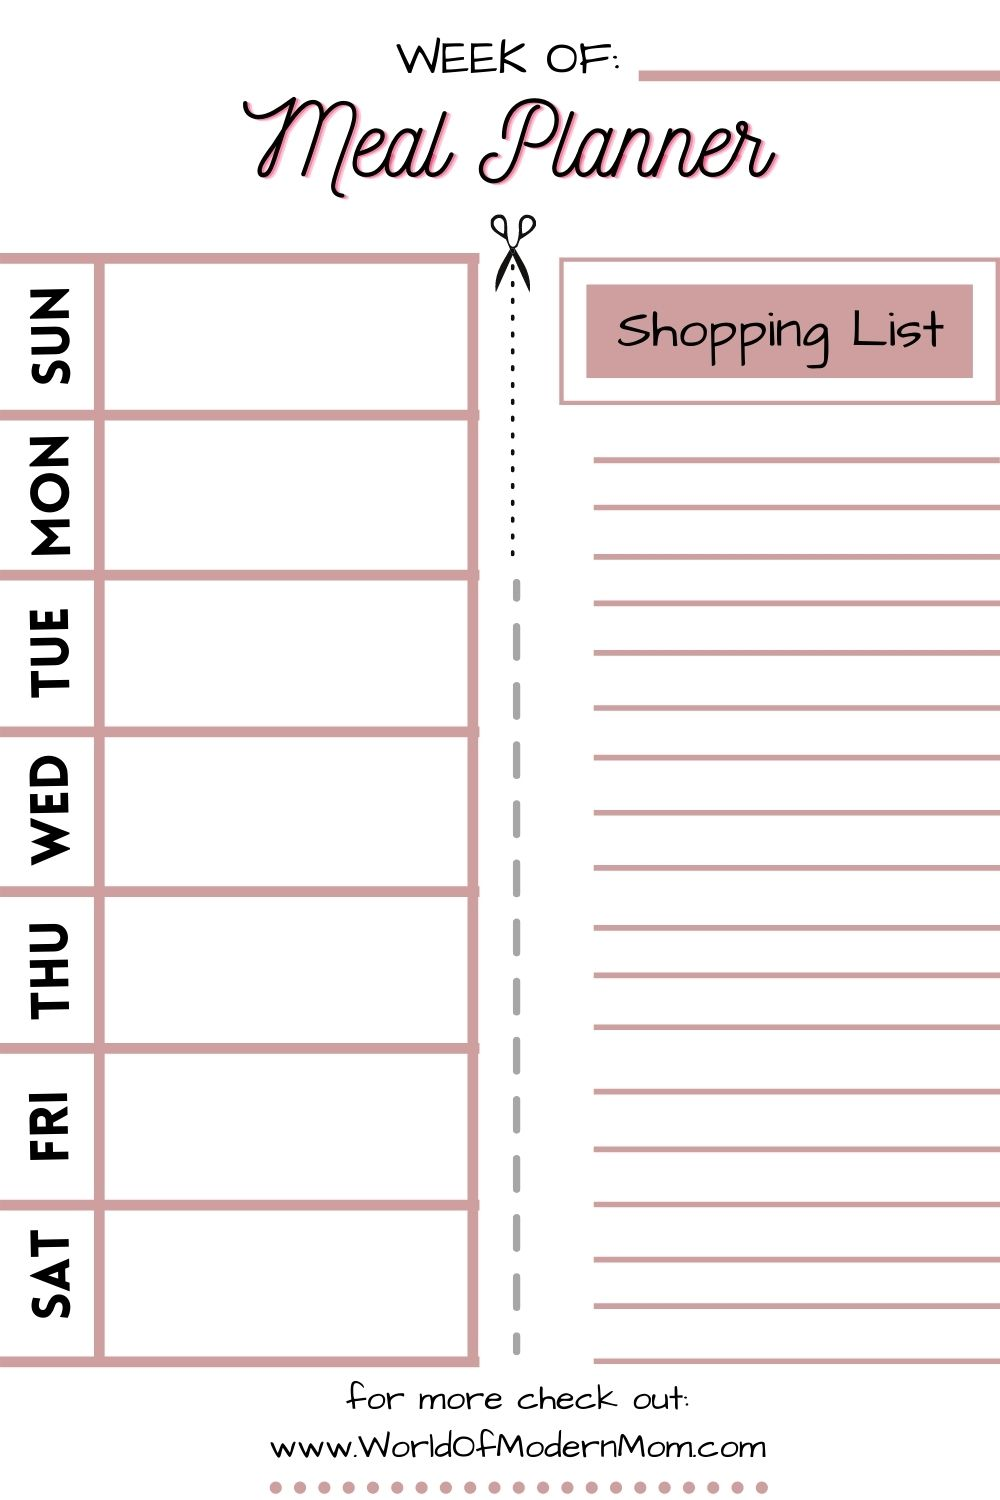 Grocery shopping list!